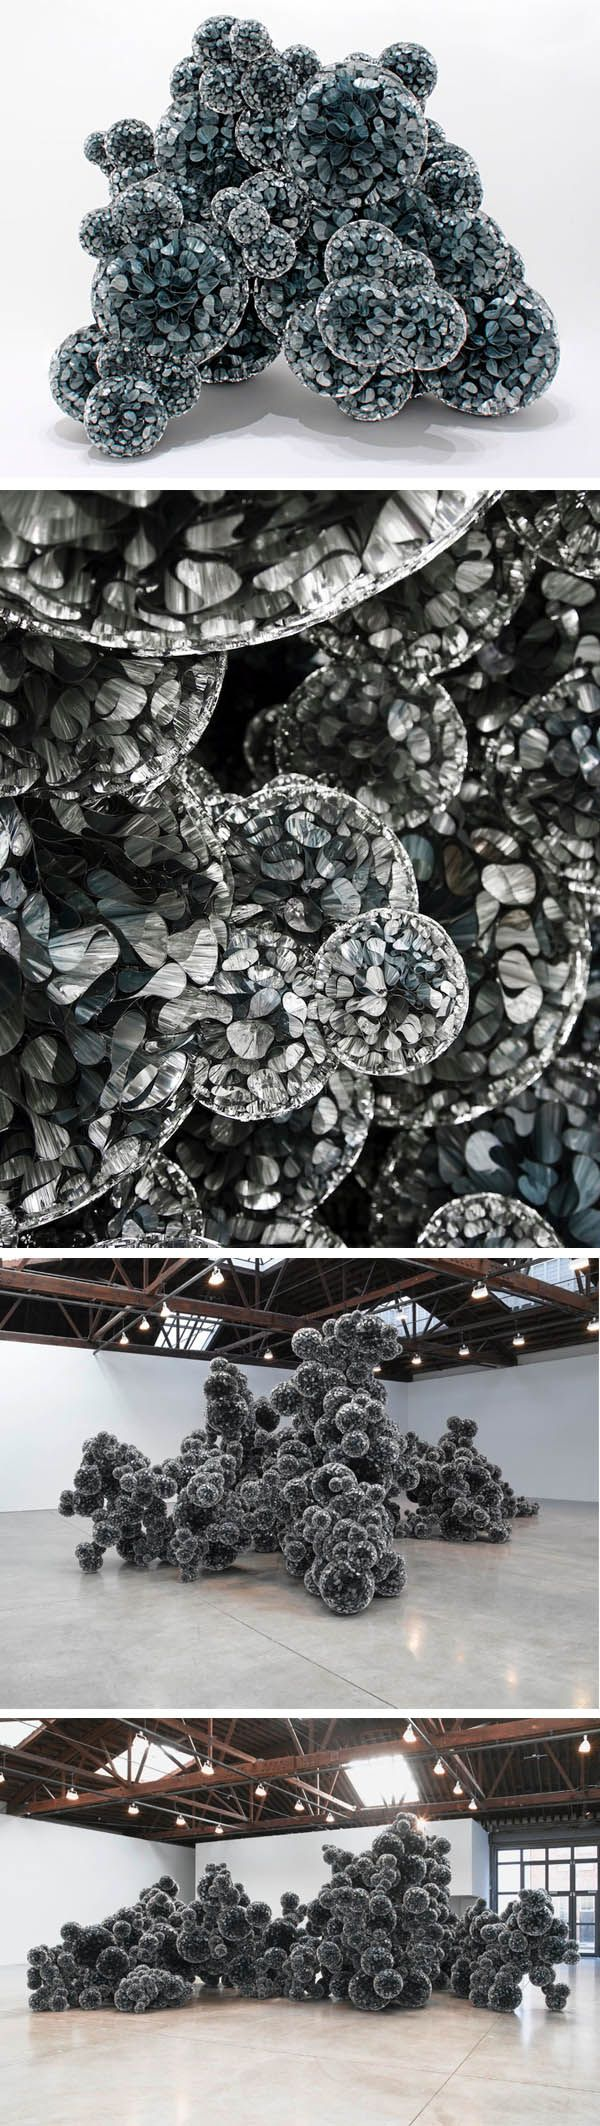 Tara Donovan's amazing installation, Untitled, 2011. Mylar and Hot Glue (amazing!)